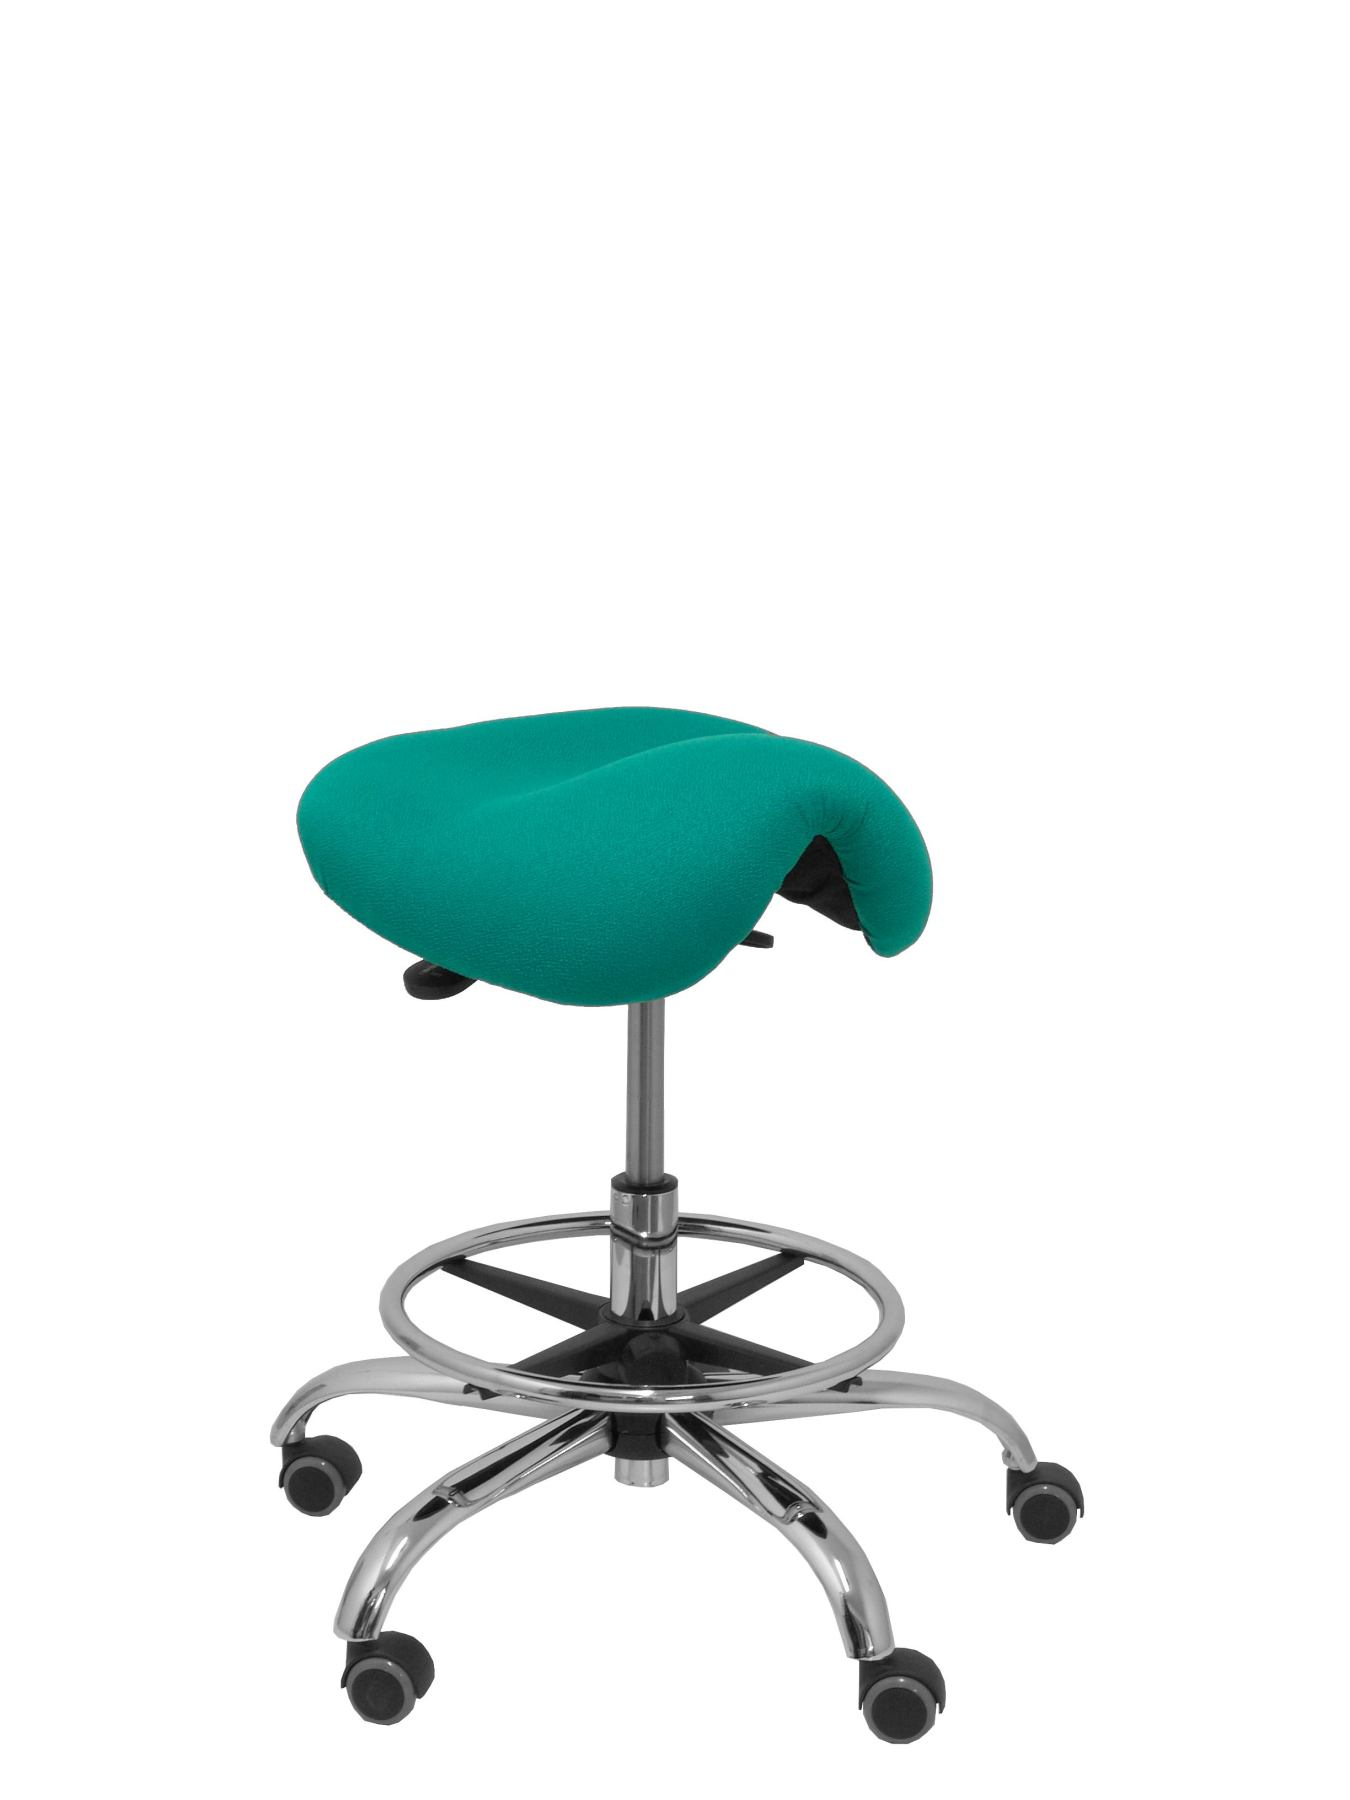 Stool Clinical Rotatable And Ergonomic Seat Anatomical And Adjustable Height (aro Footrest Chrome INCLUDED)